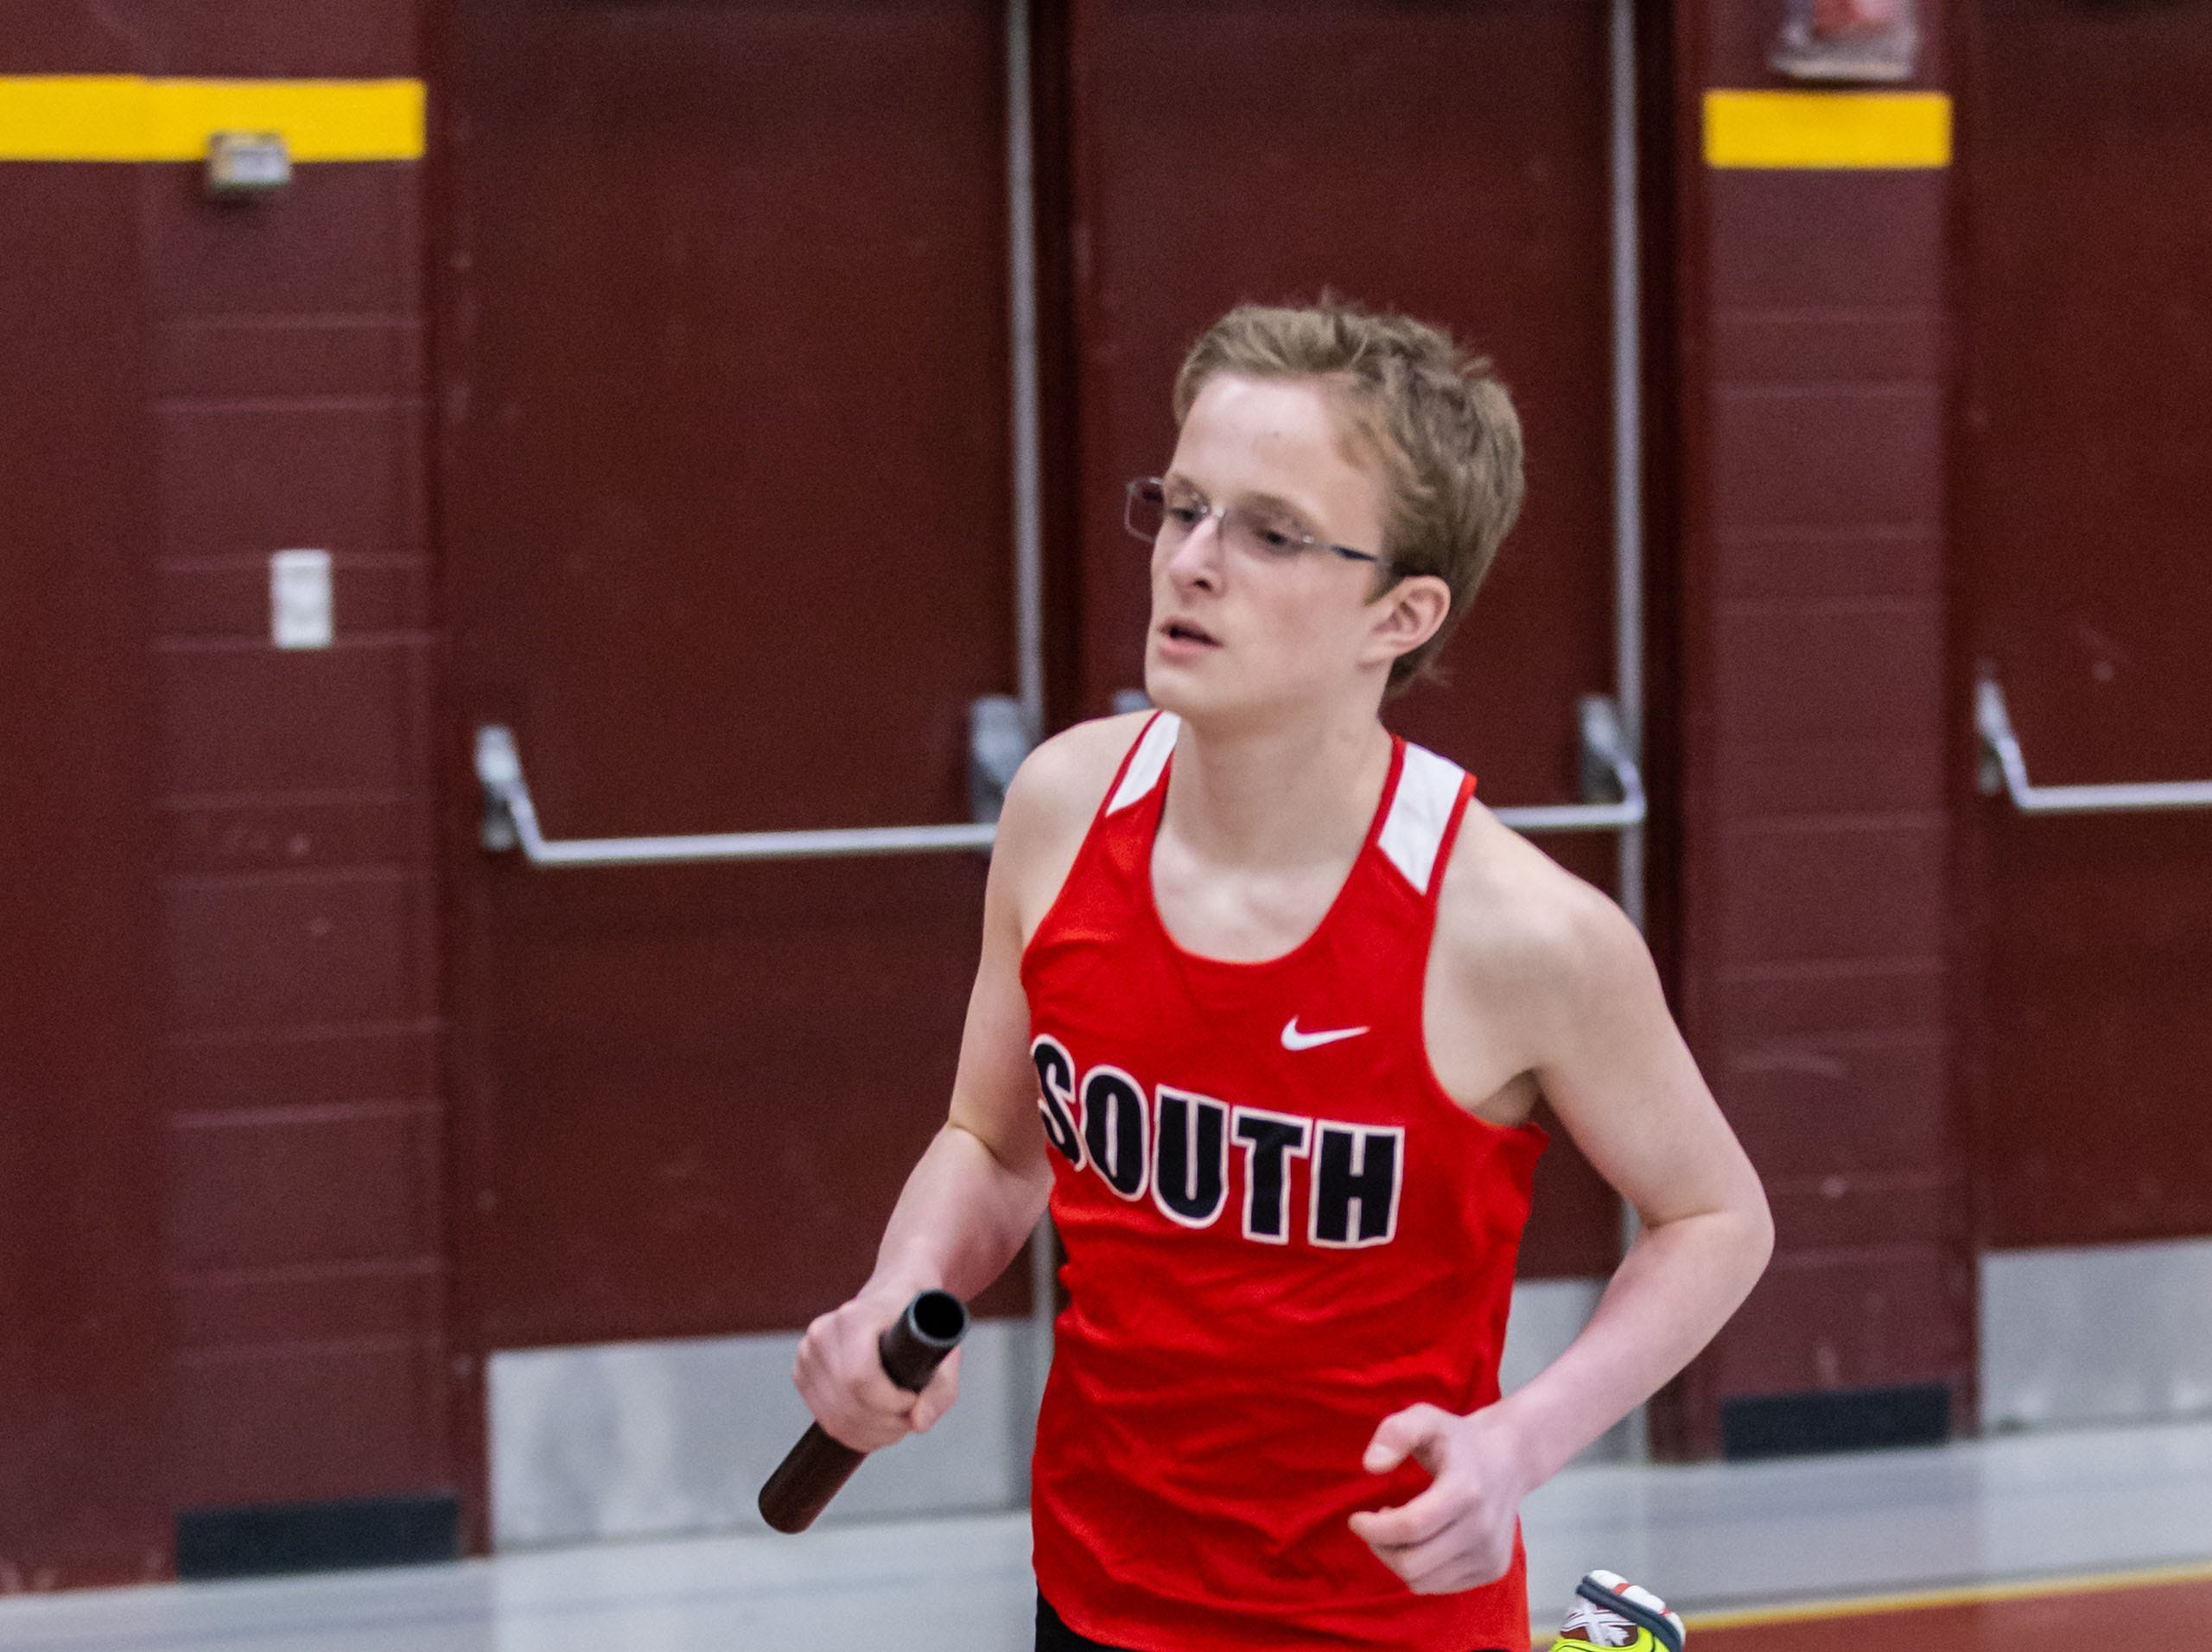 Waukesha South's Noah Kulas competes in the distance medley relay at the Reinhard Bulldog Relays hosted by West Allis Central on Friday, March 15, 2019.